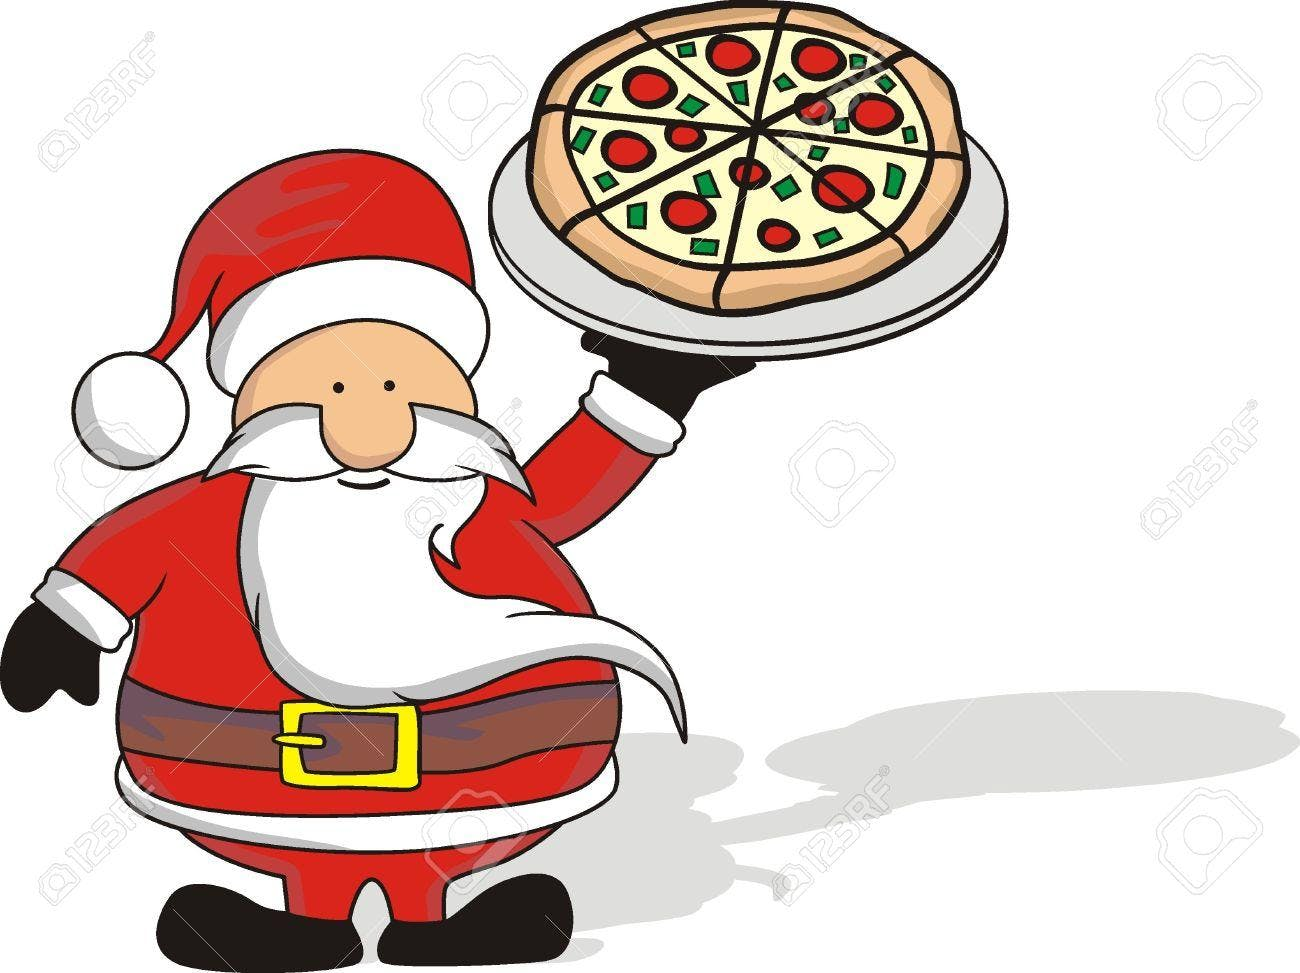 Pizza Party With Santa